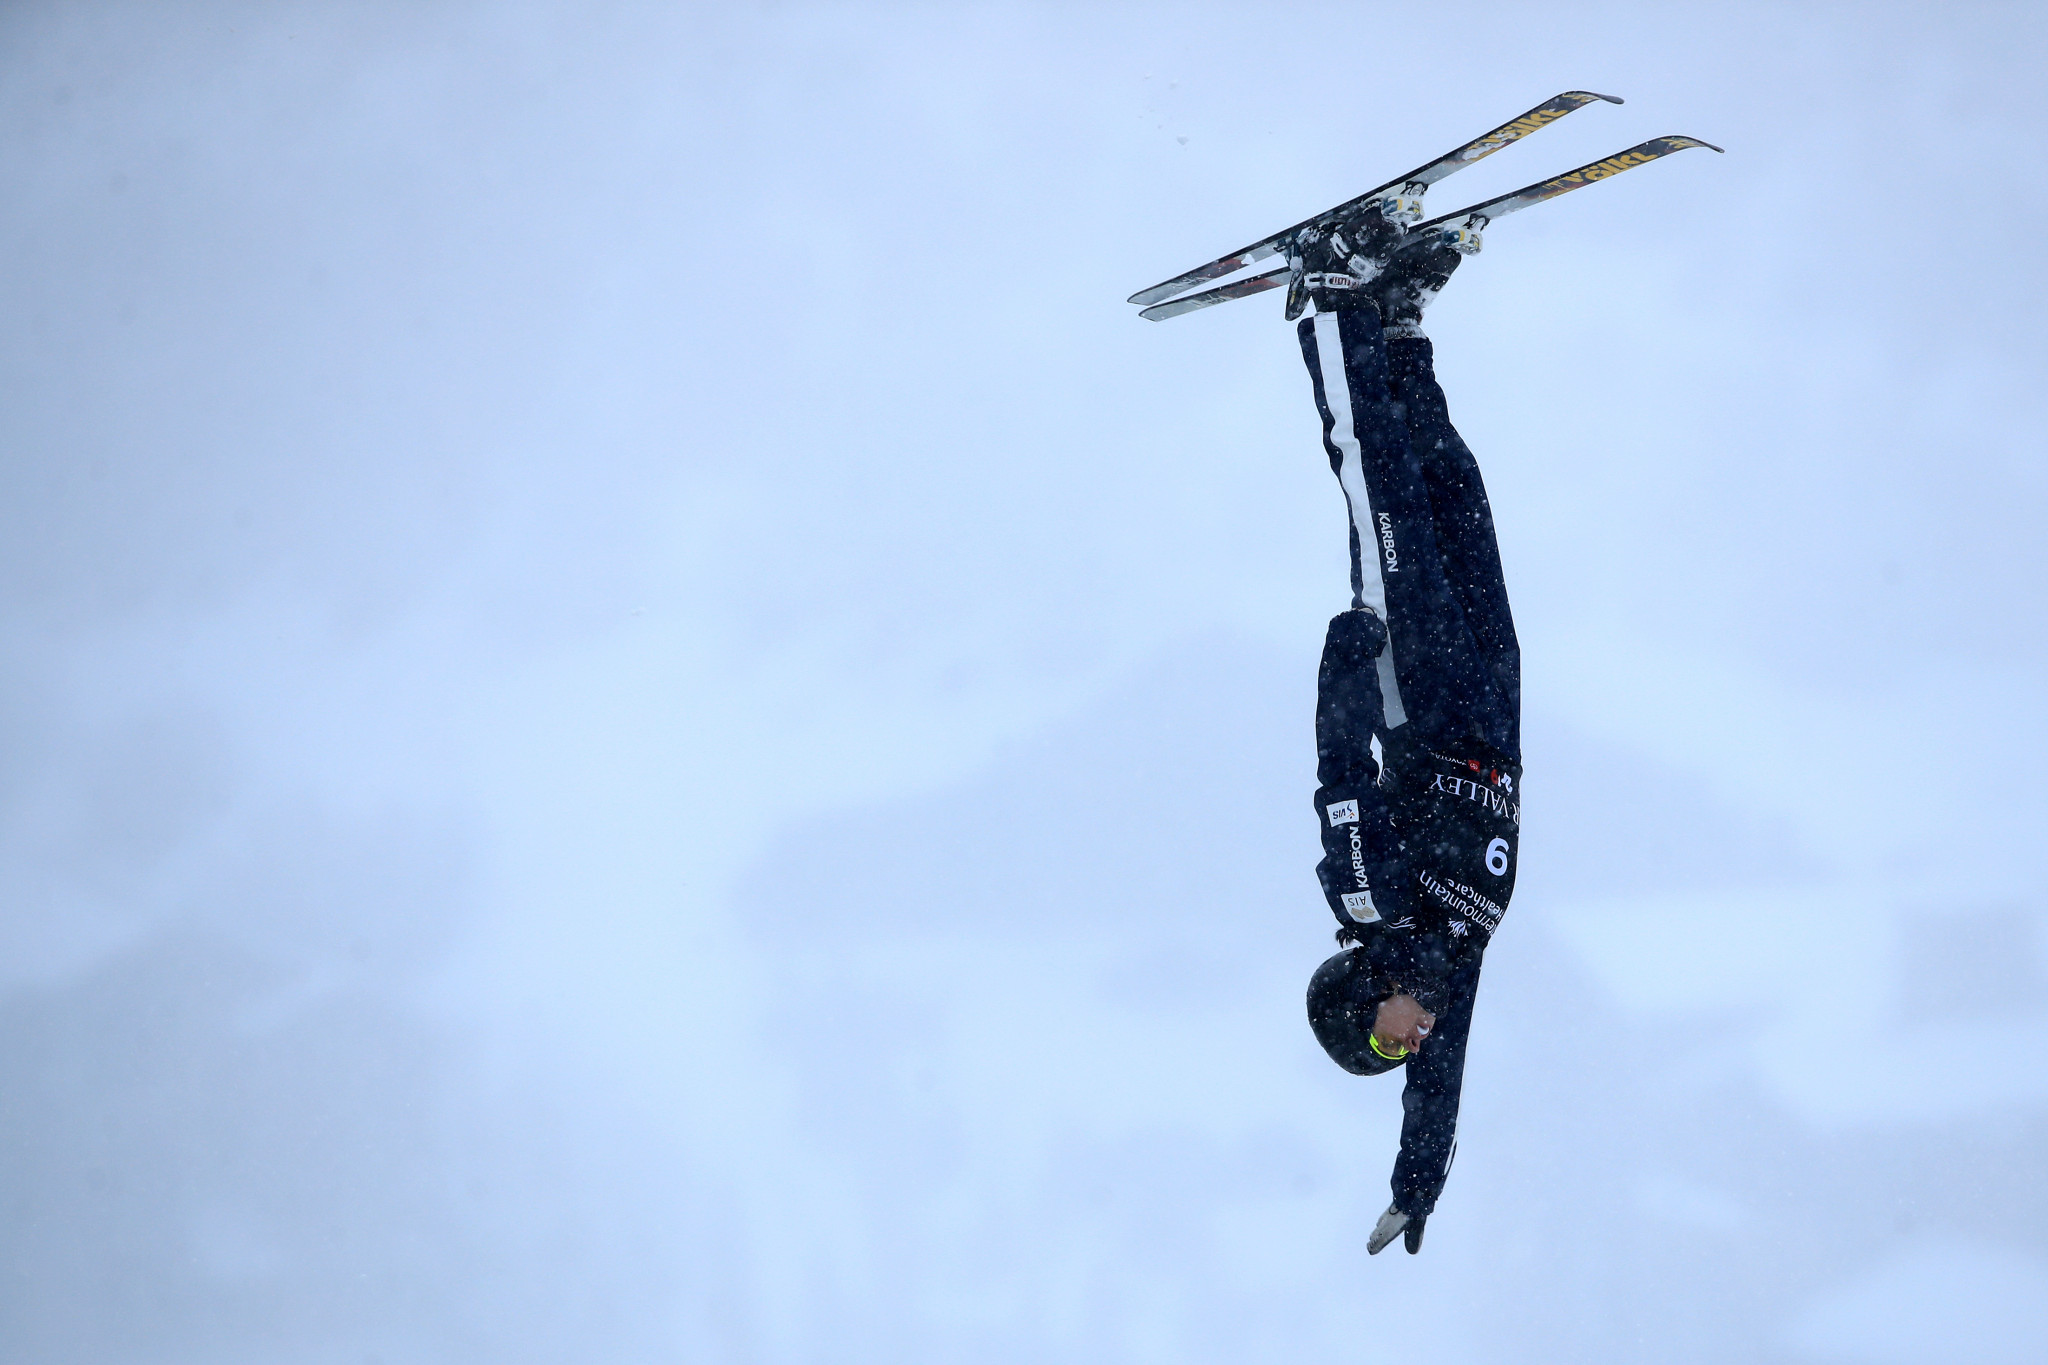 Peel and Burov prove too strong with Aerials World Cup win in Yaroslavl